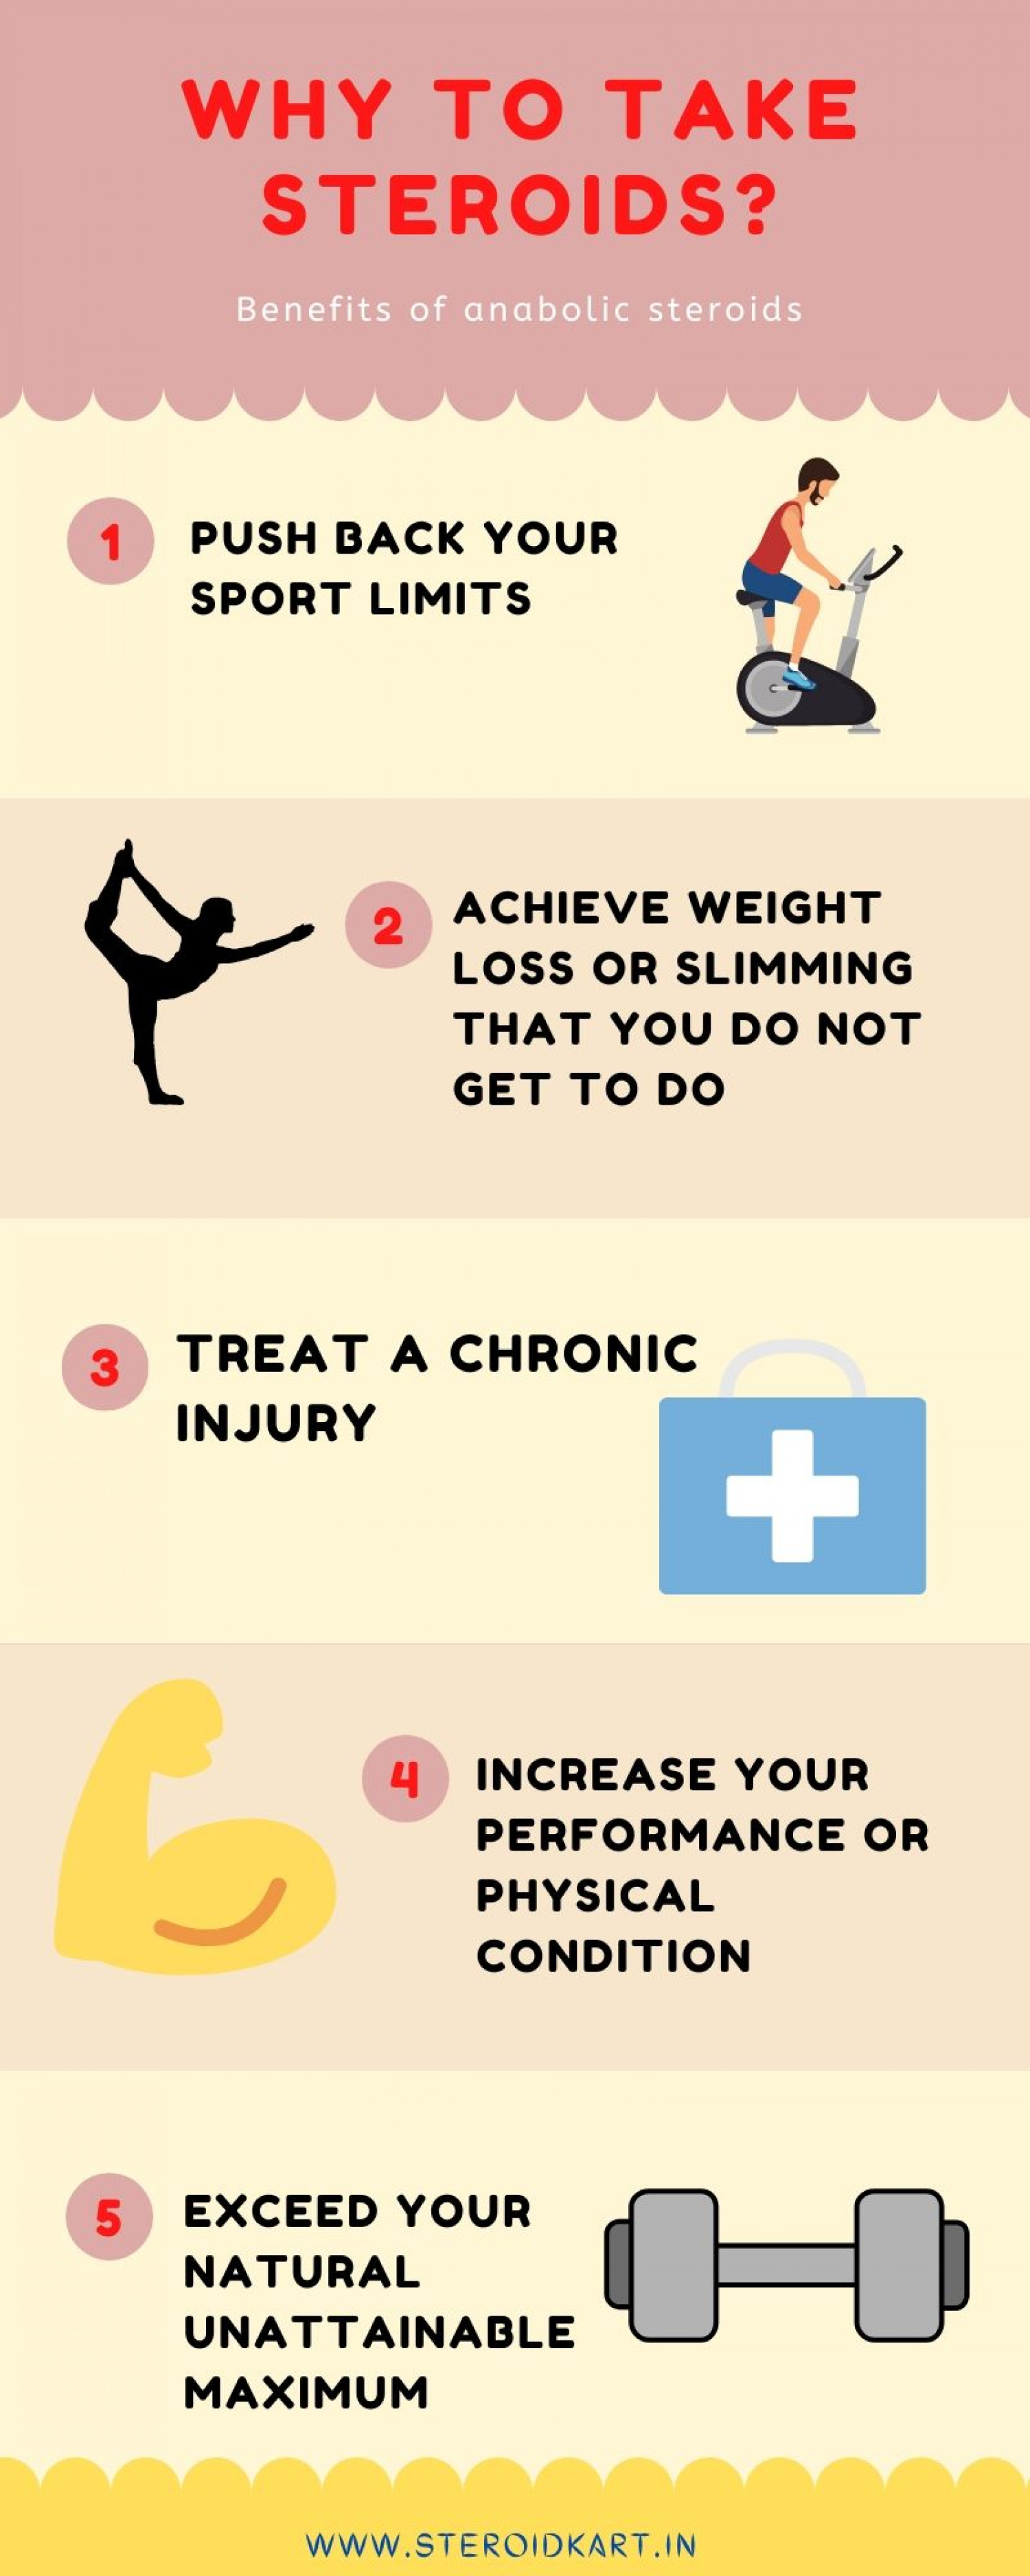 Why to take steroids? Benefits of anabolic steroids Infographic